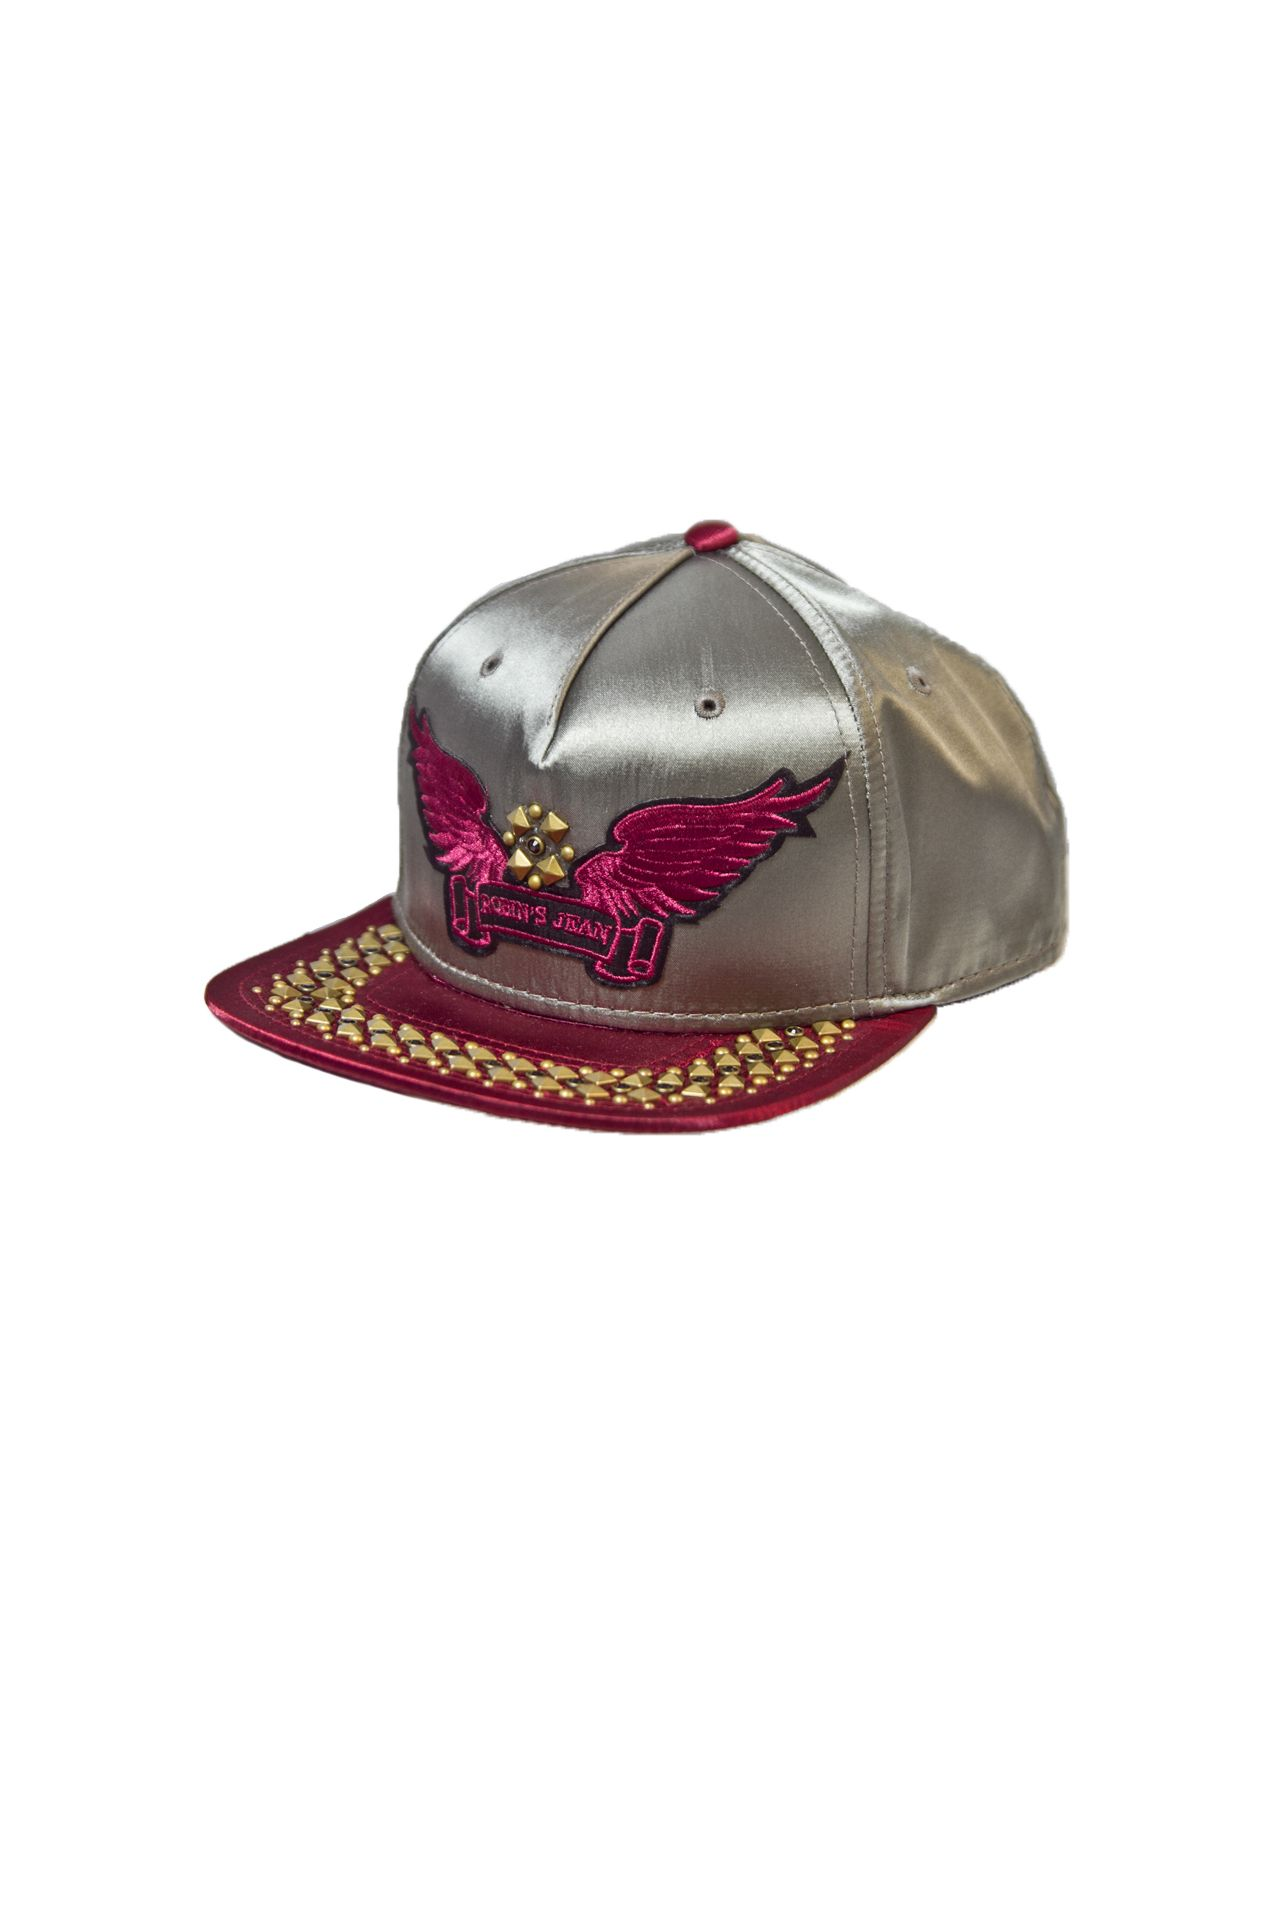 SILVER SATIN CAP 2 TONES WITH TOPAZE CRYSTALS, GOLD PYRAMID AND SIGNATURE WINGS